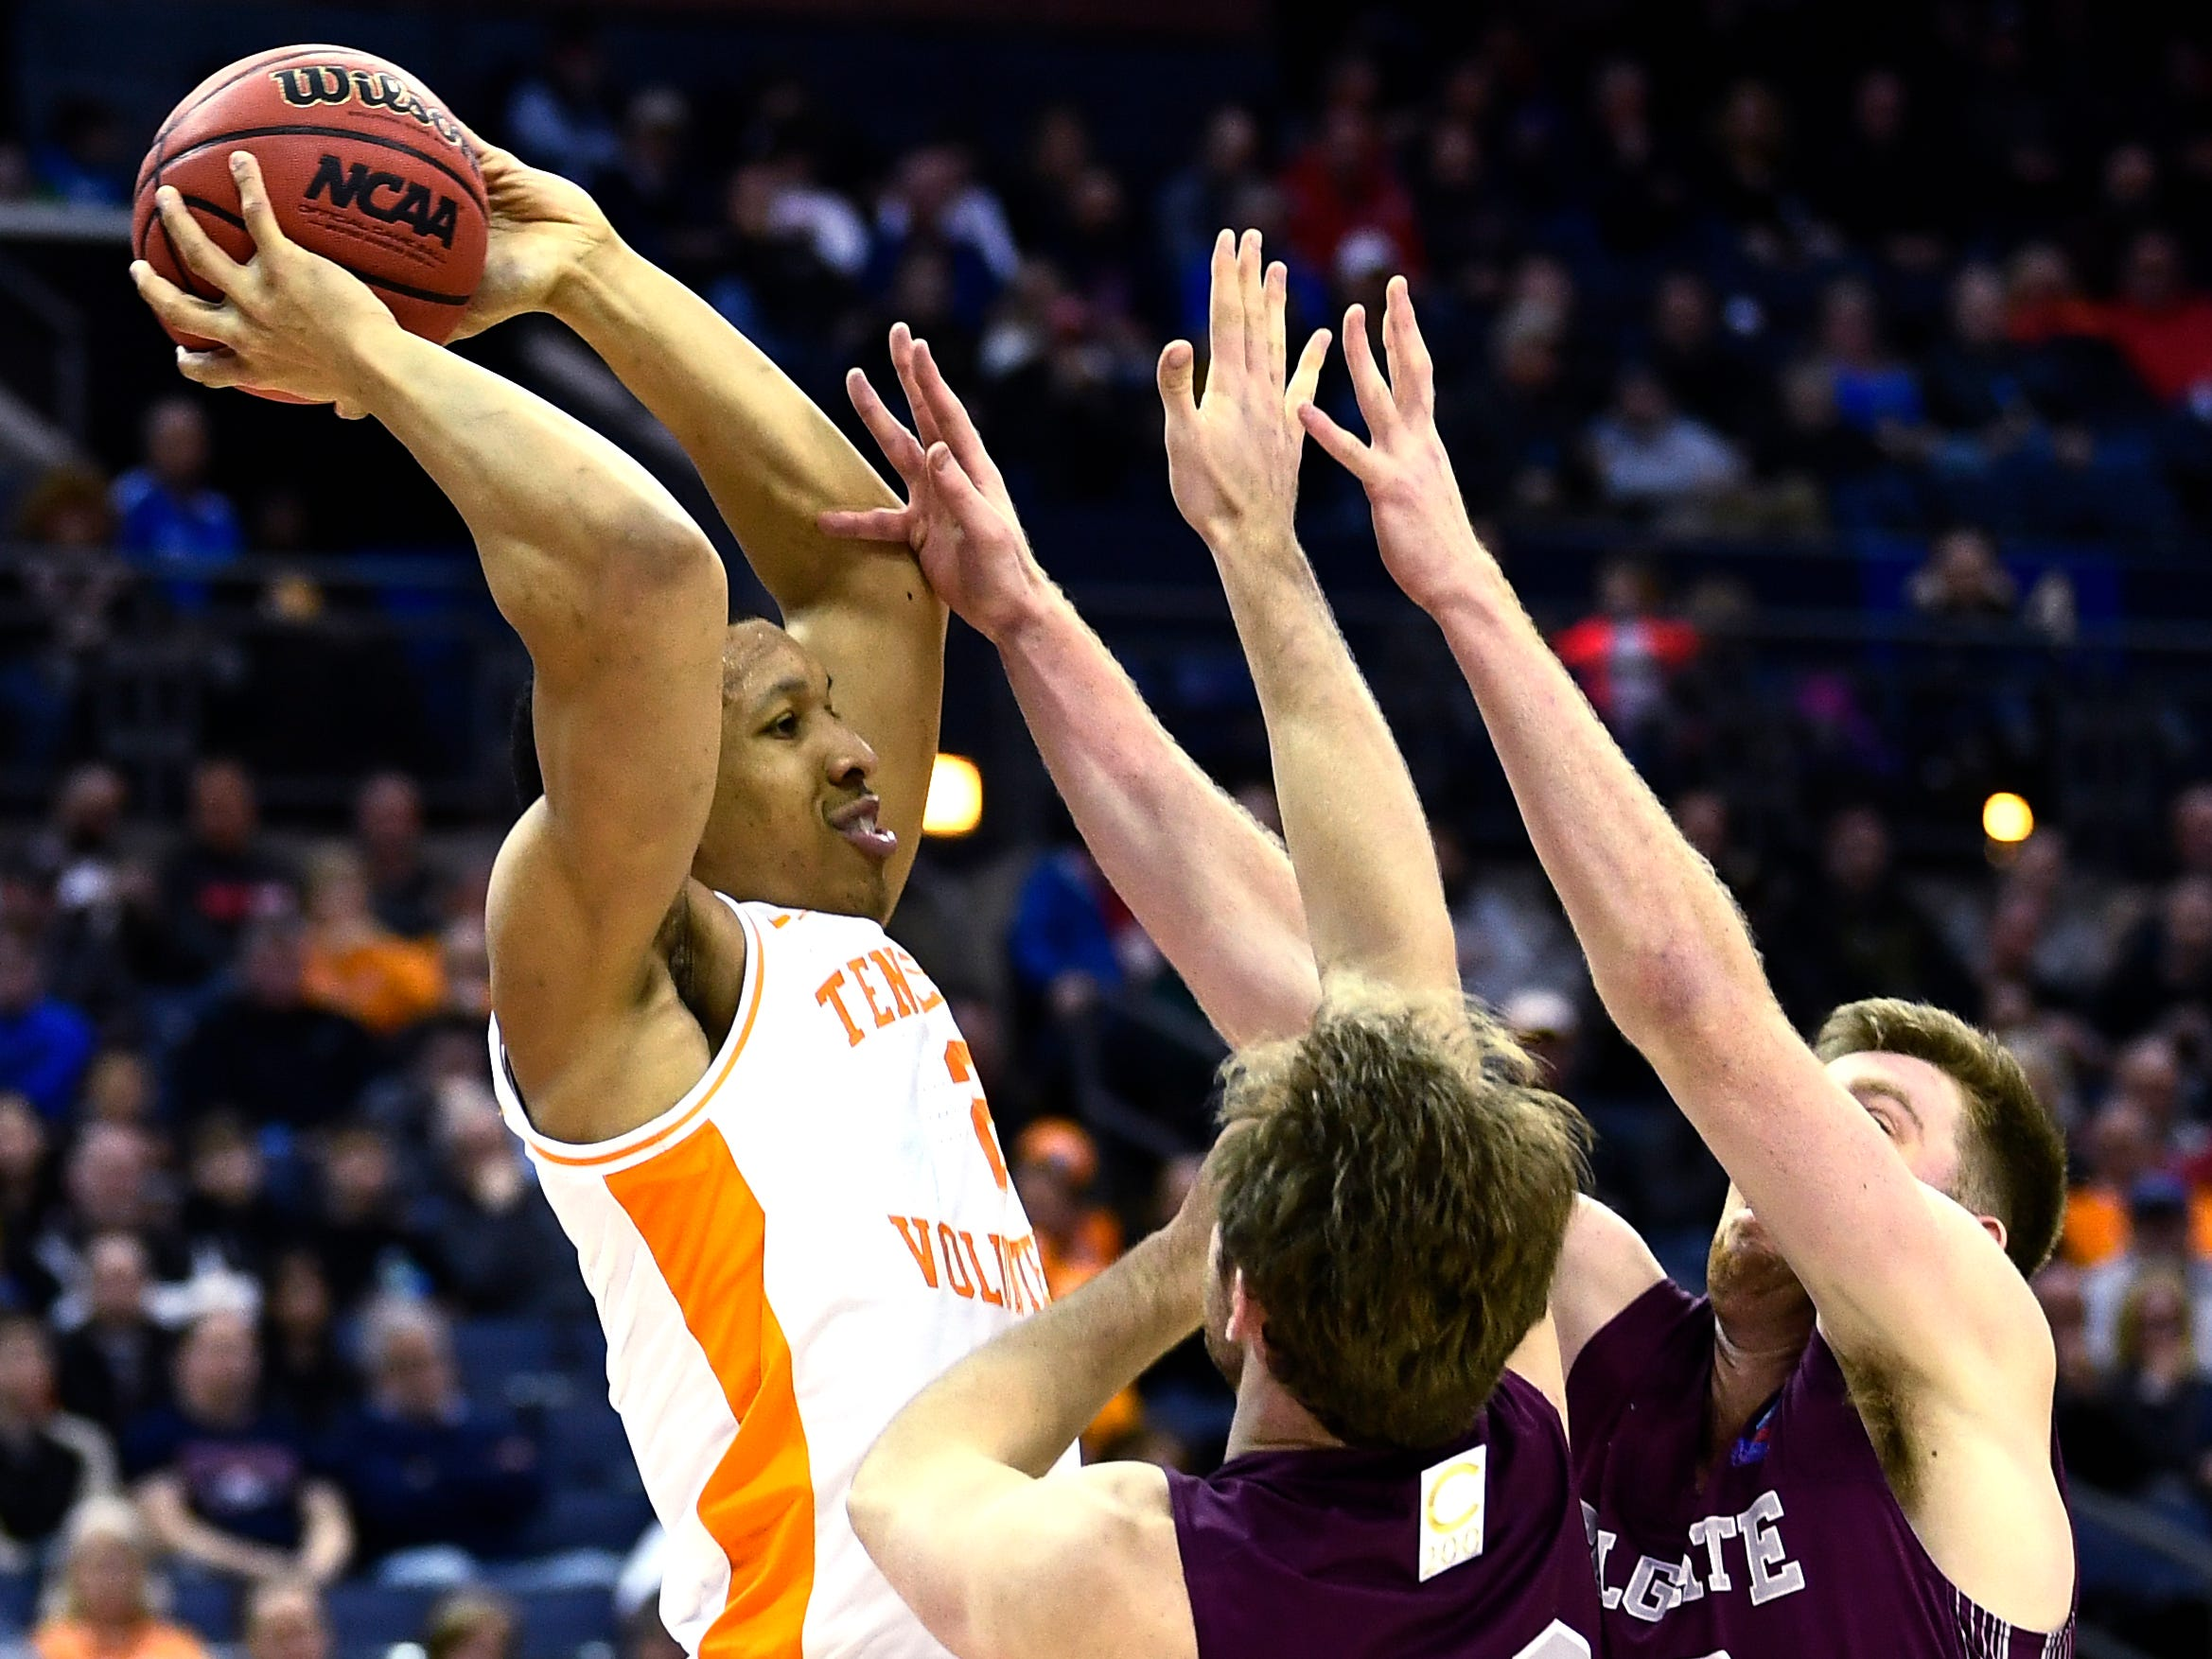 Tennessee forward Grant Williams (2) passes the ball defended by Colgate center Dana Batt (12) and  forward Will Rayman (10) during their first round game in the NCAA Tournament at Nationwide Arena in Columbus, Ohio, on Friday, March 22, 2019.